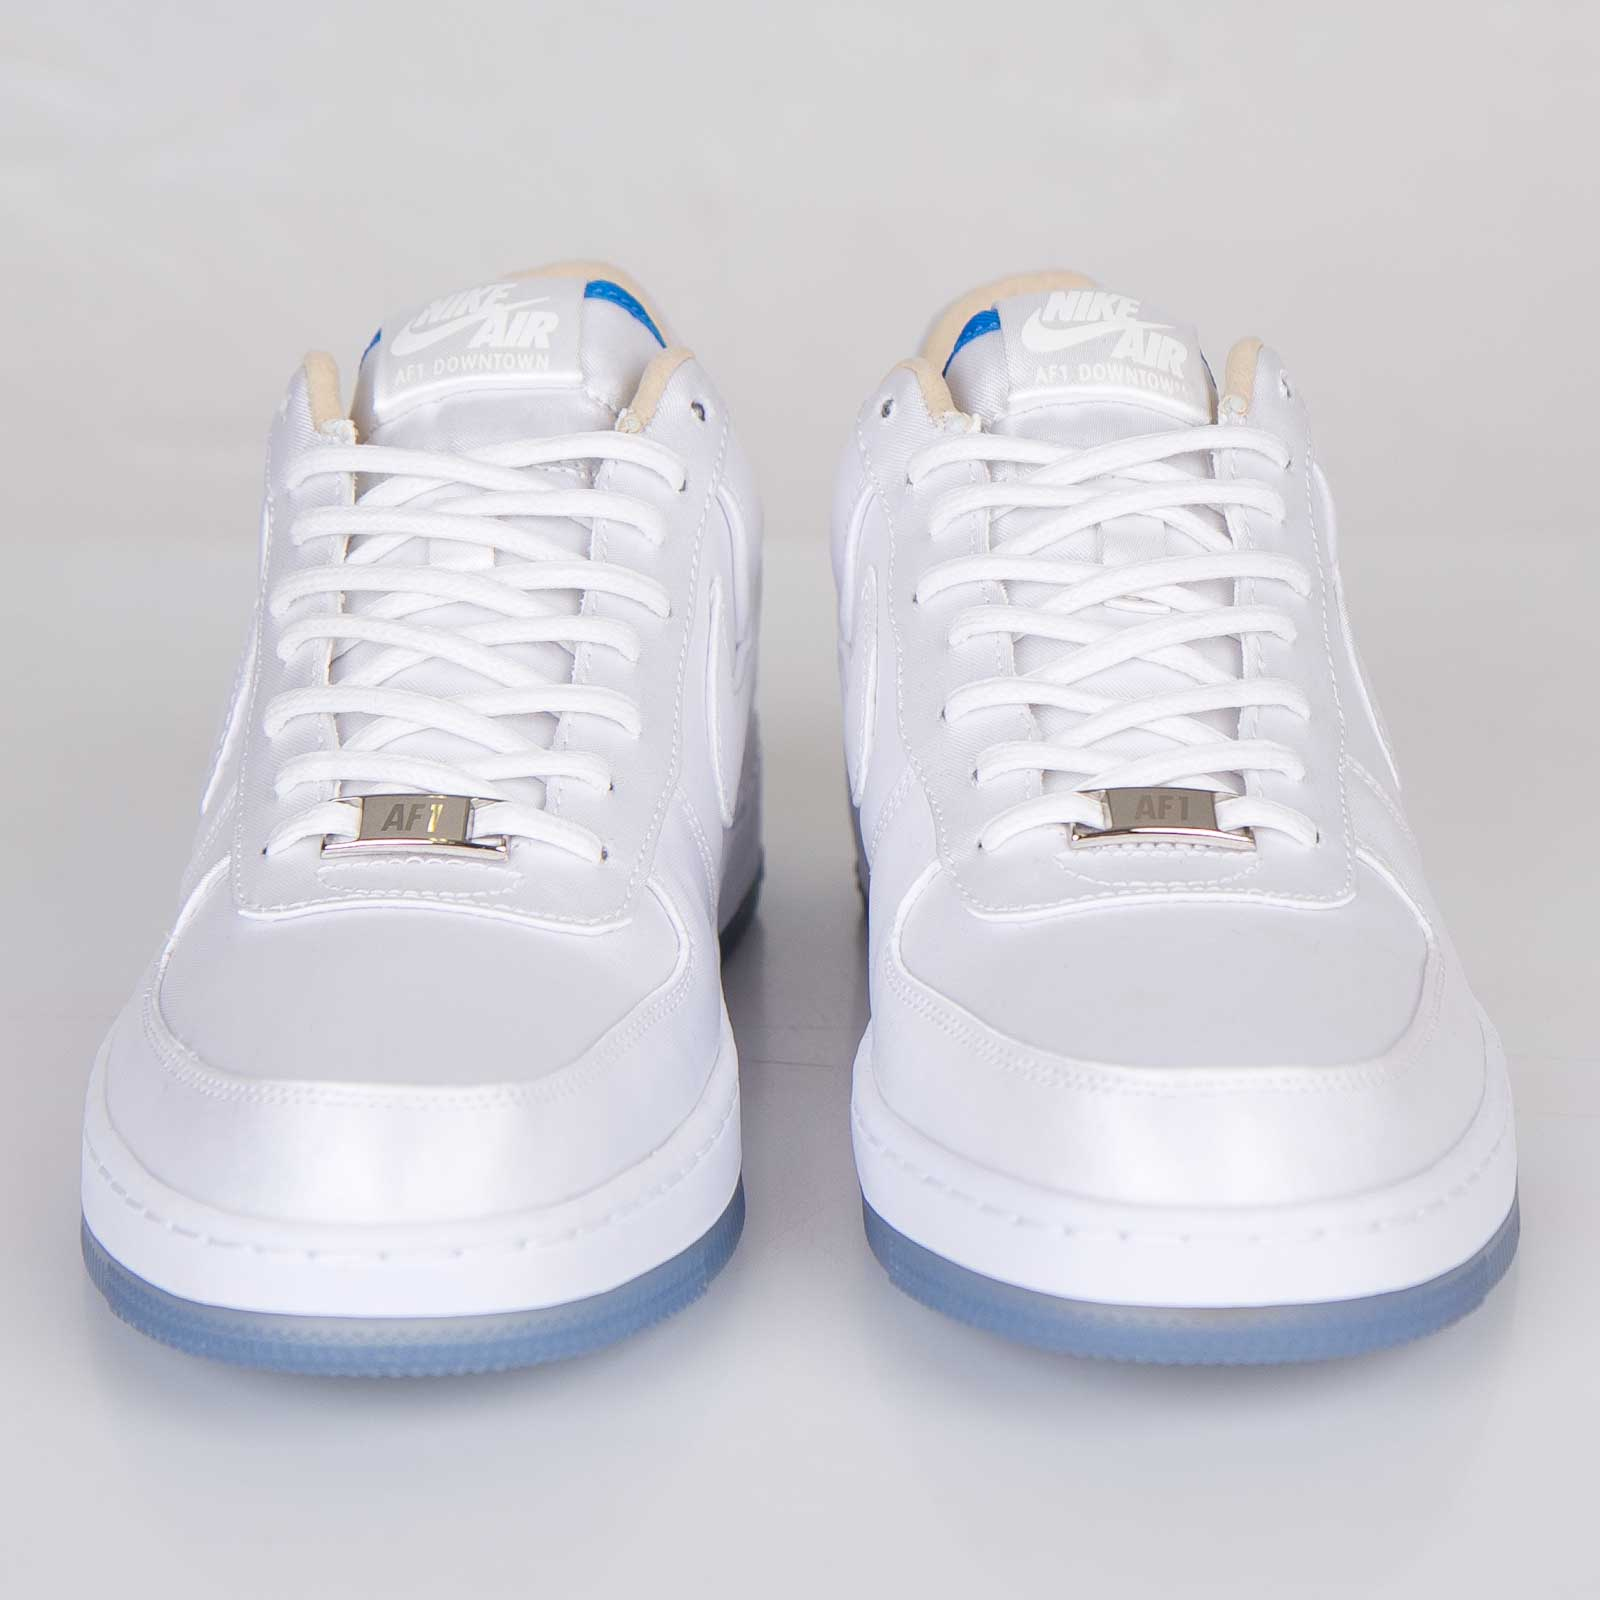 sports shoes f97c7 92bc8 Nike Air Force 1 Downtown QS - 635273-100 - Sneakersnstuff   sneakers    streetwear online since 1999